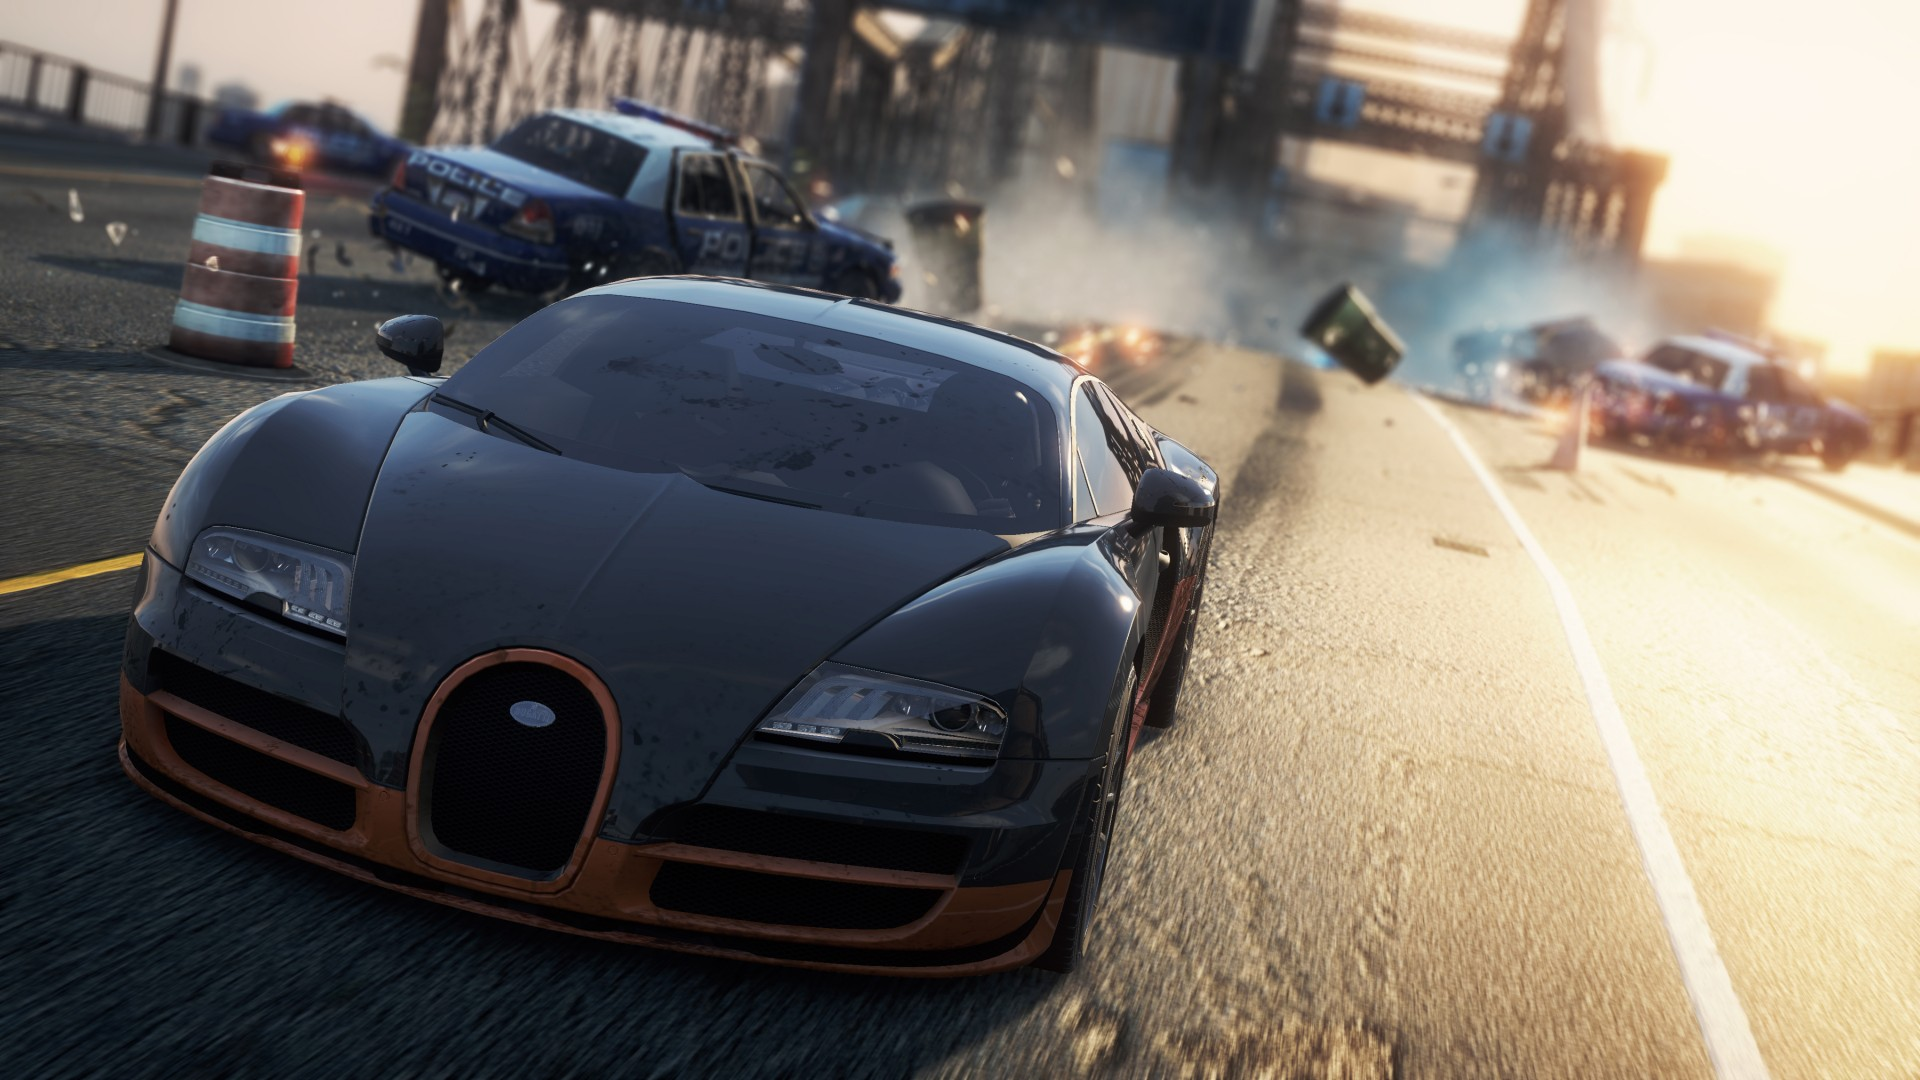 What factors make bugatti veyron games fun and exciting and if you want more reasons to try and buy these kinds of games here are four more reasons for you that can certainly change your mind voltagebd Images